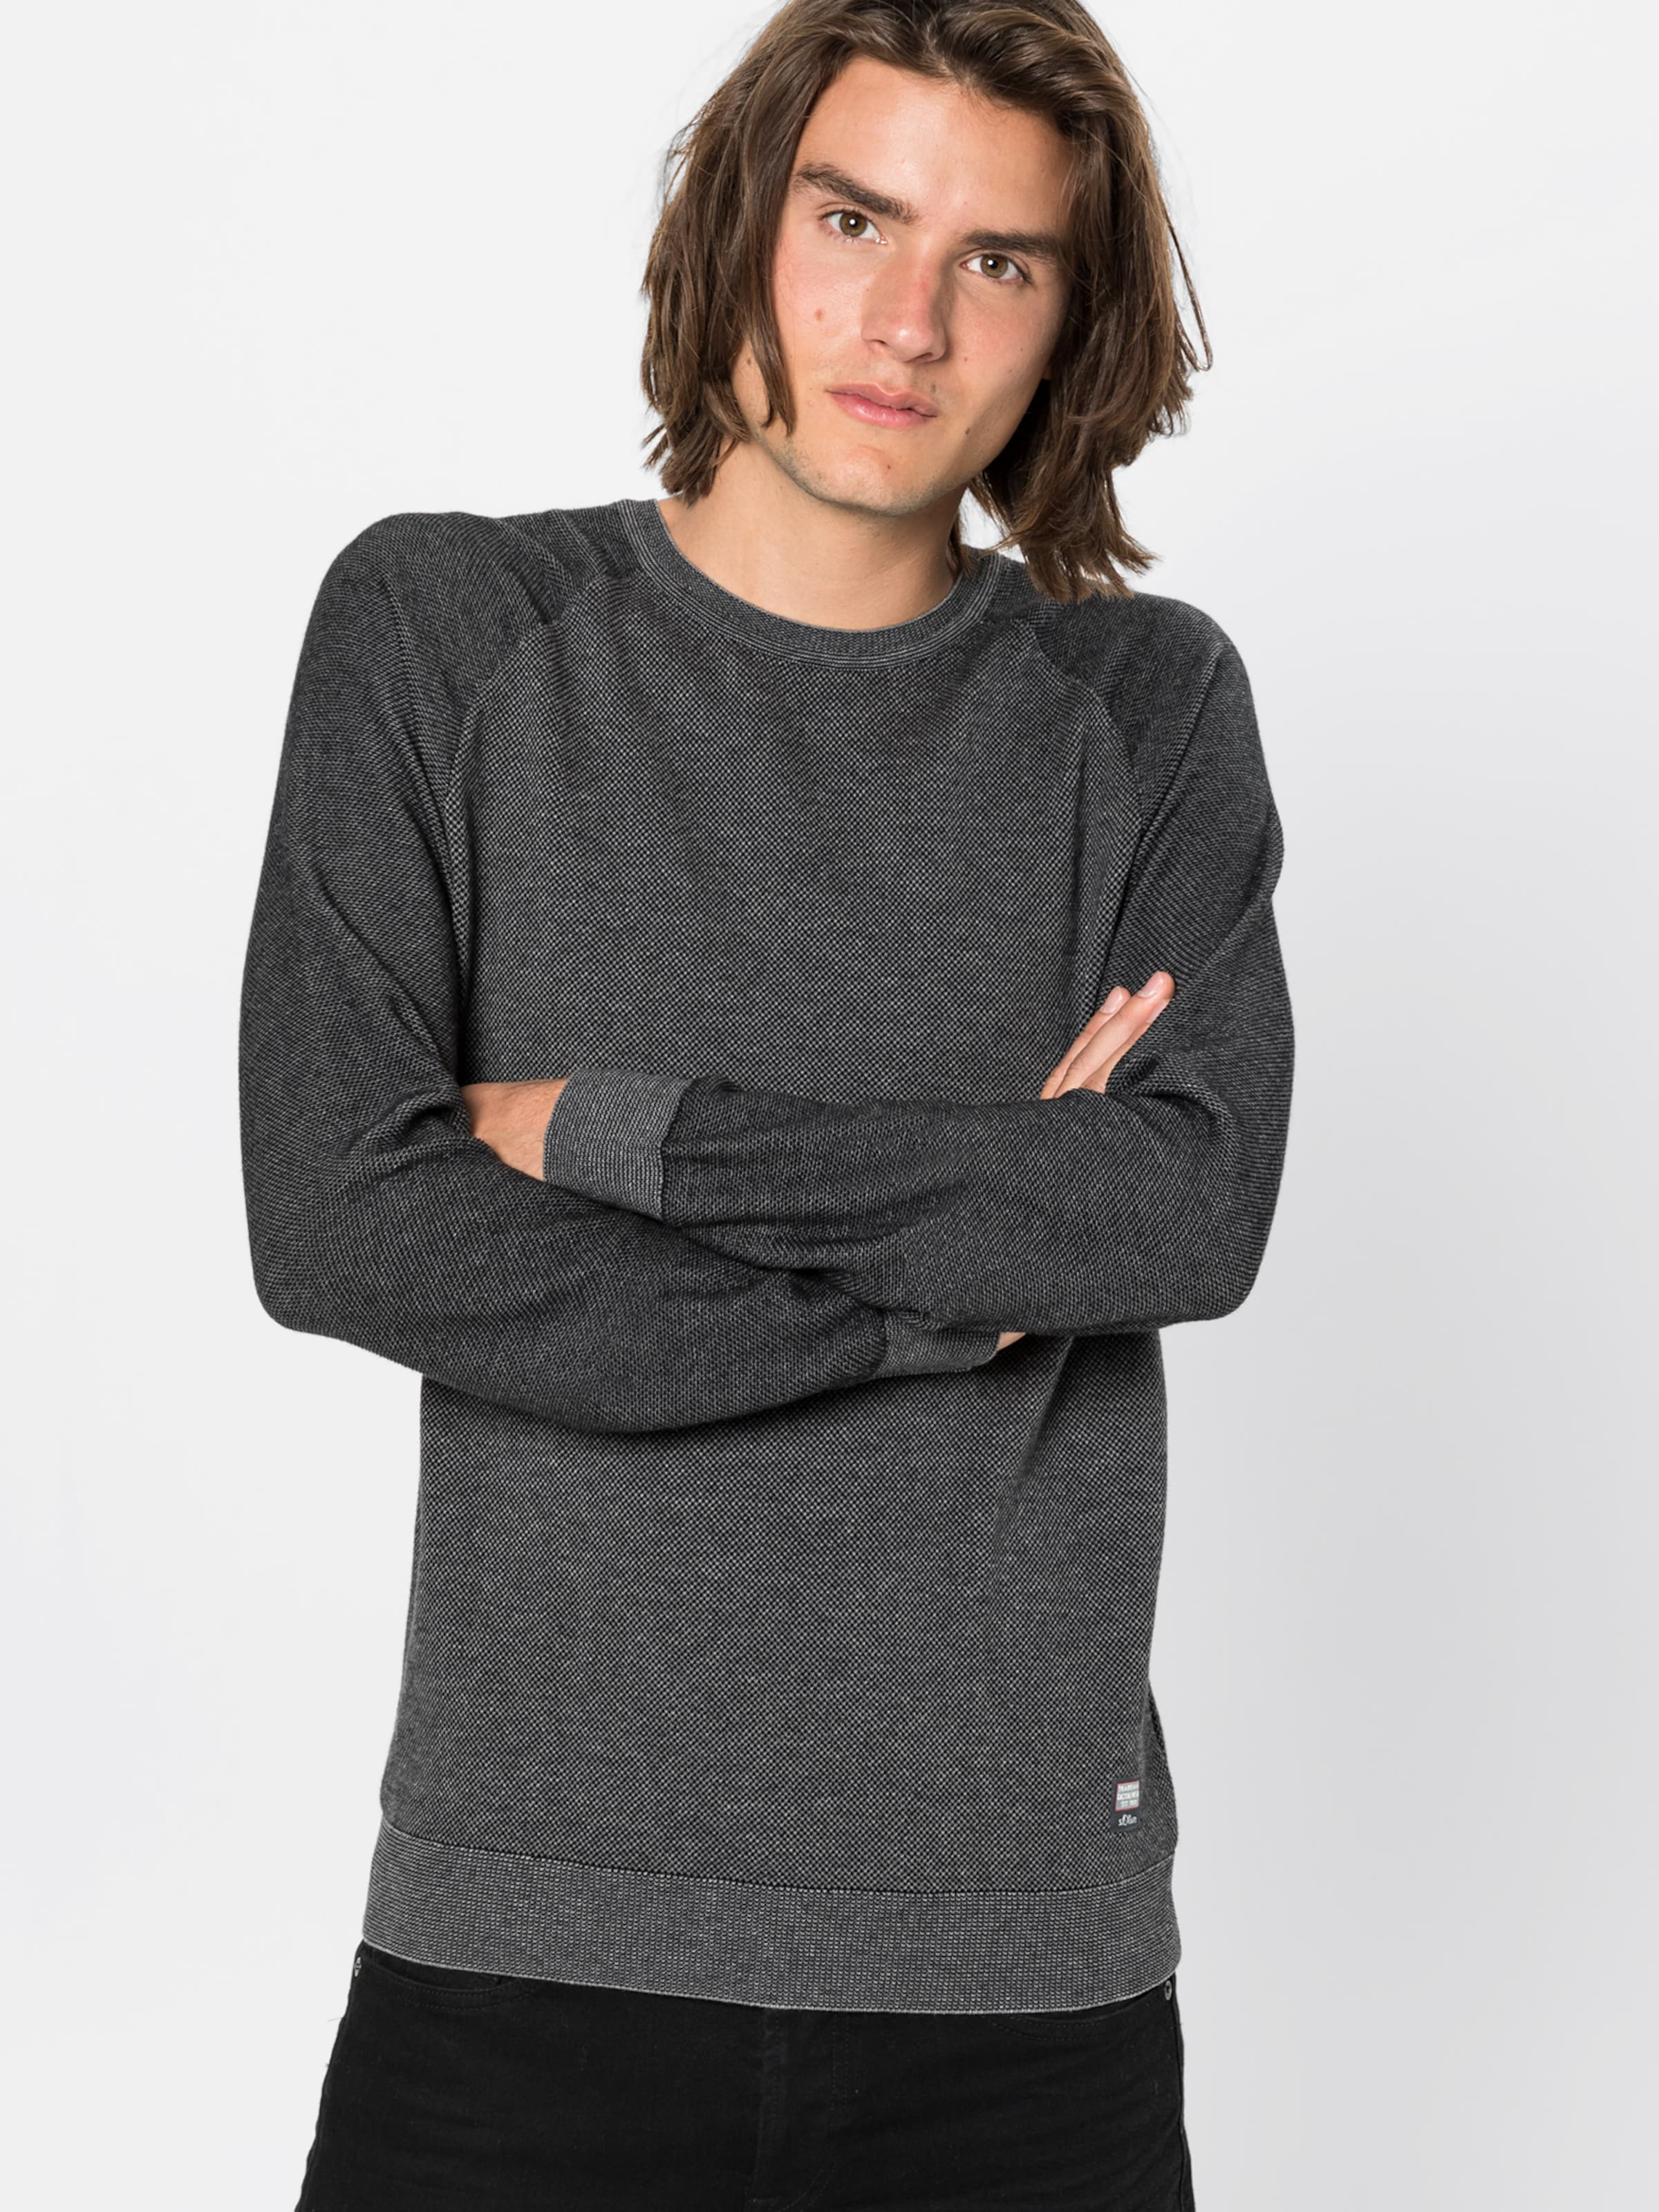 Label GrauSchwarz Red S Pullover In oliver HID2WE9